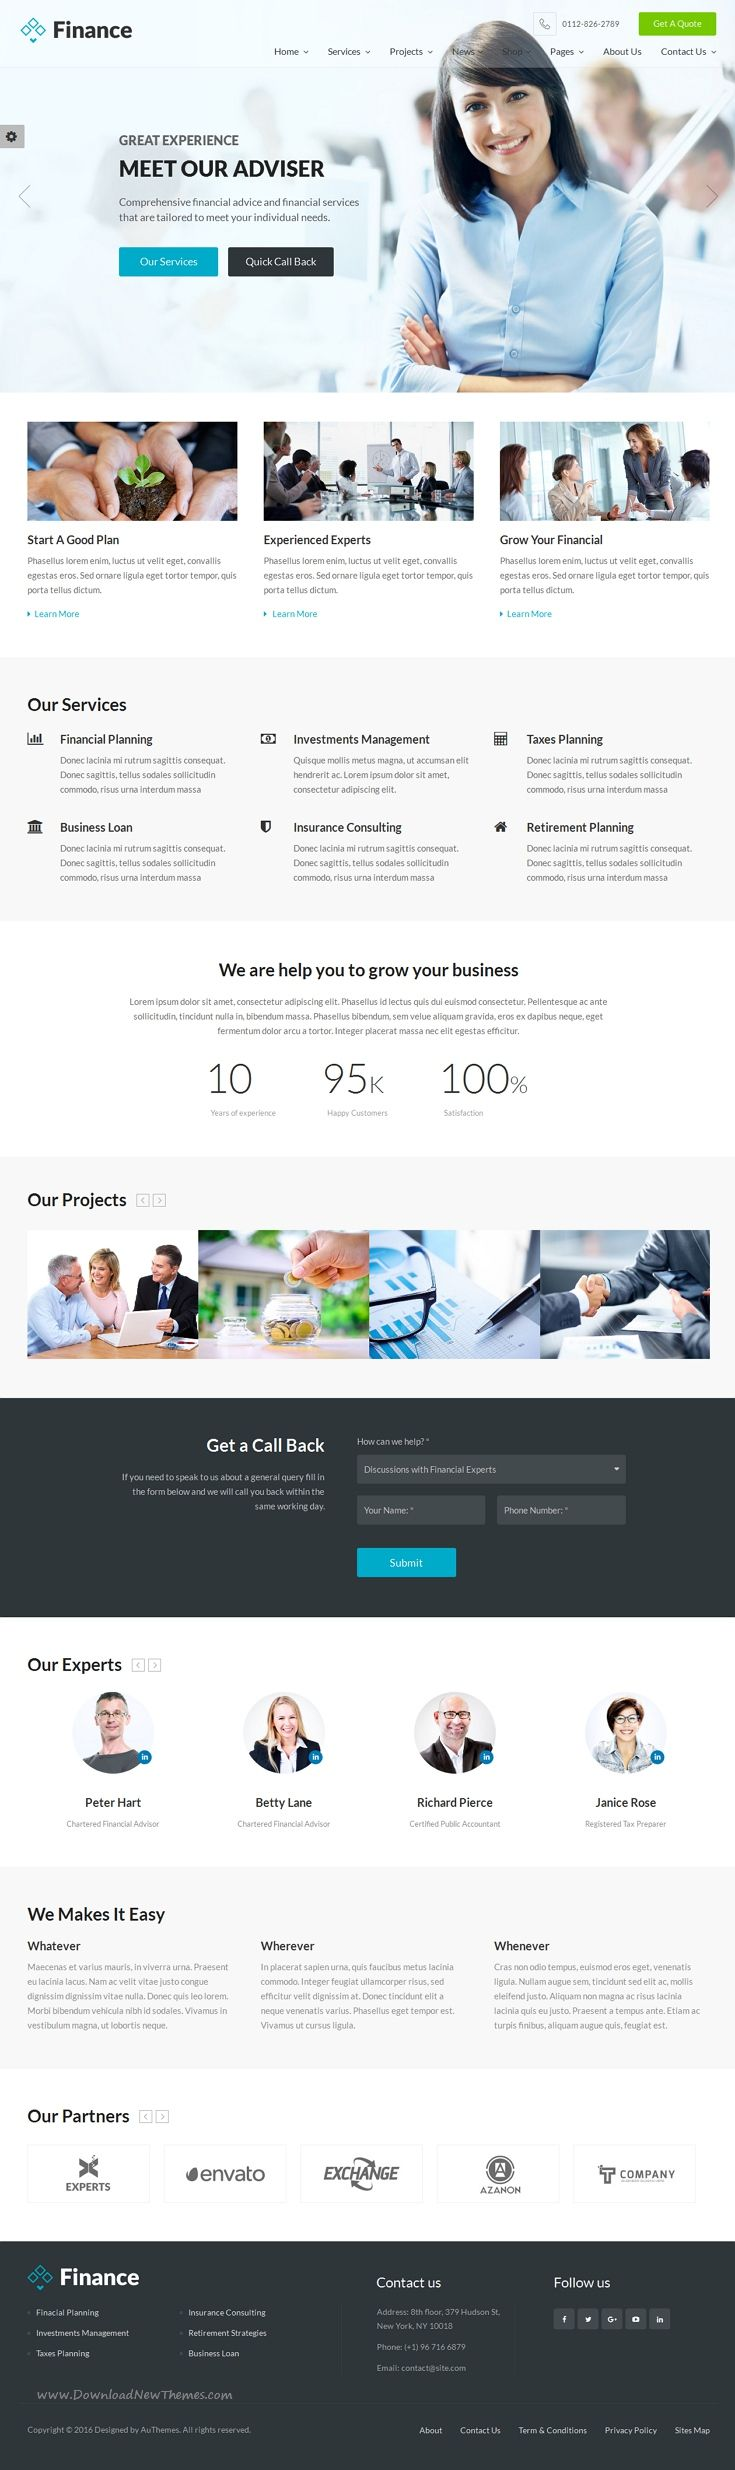 Tax consultant website template vatozozdevelopment tax consultant website template flashek Choice Image